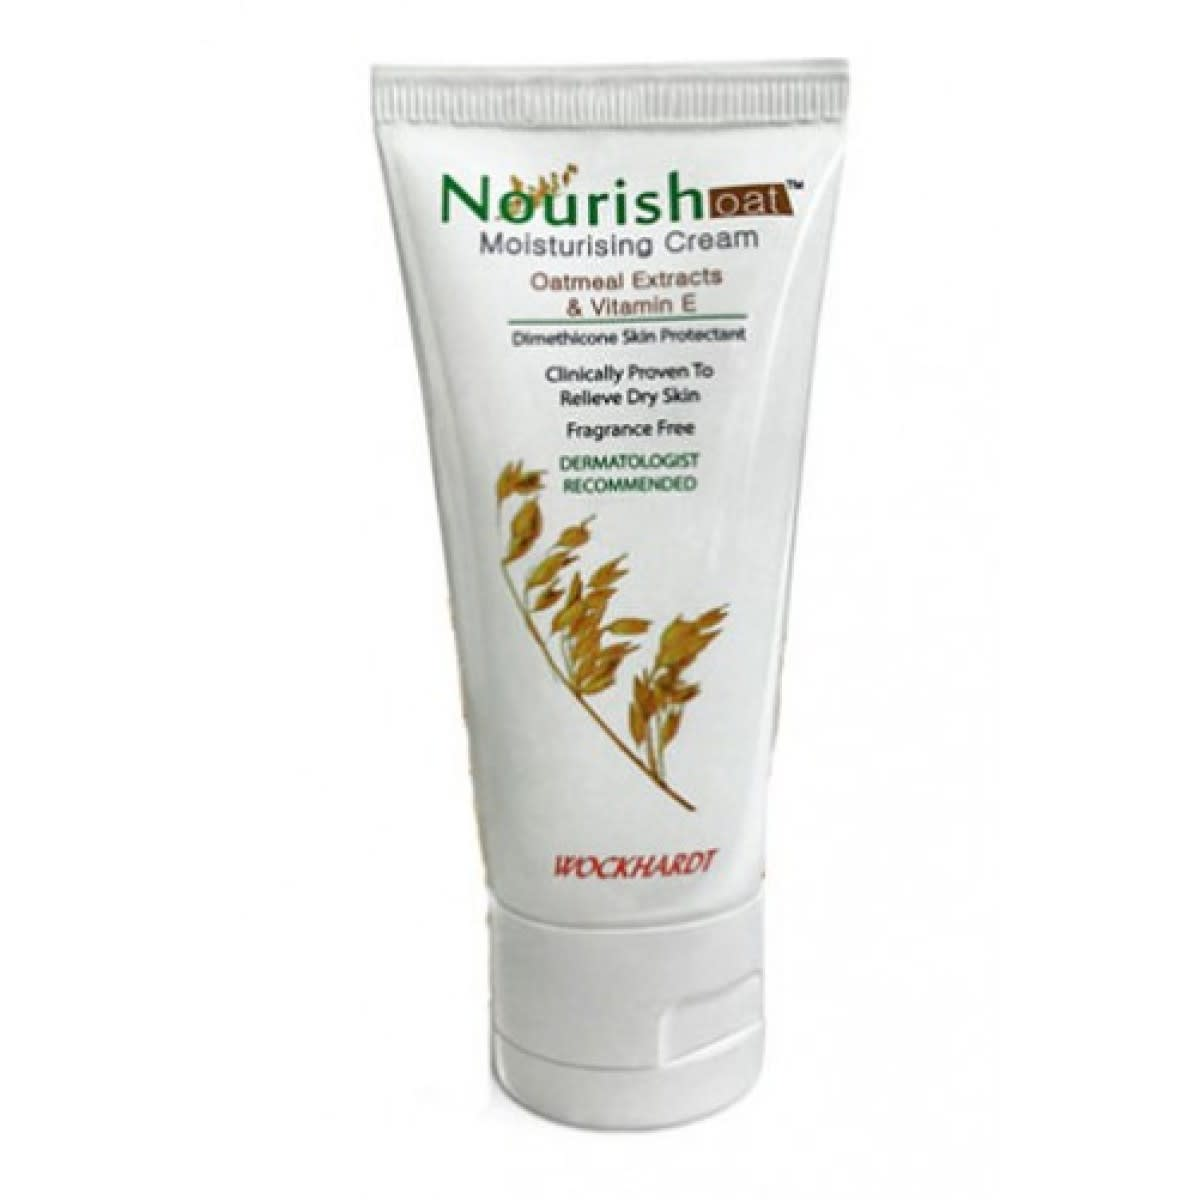 Nourish Oat Moiturising Cream